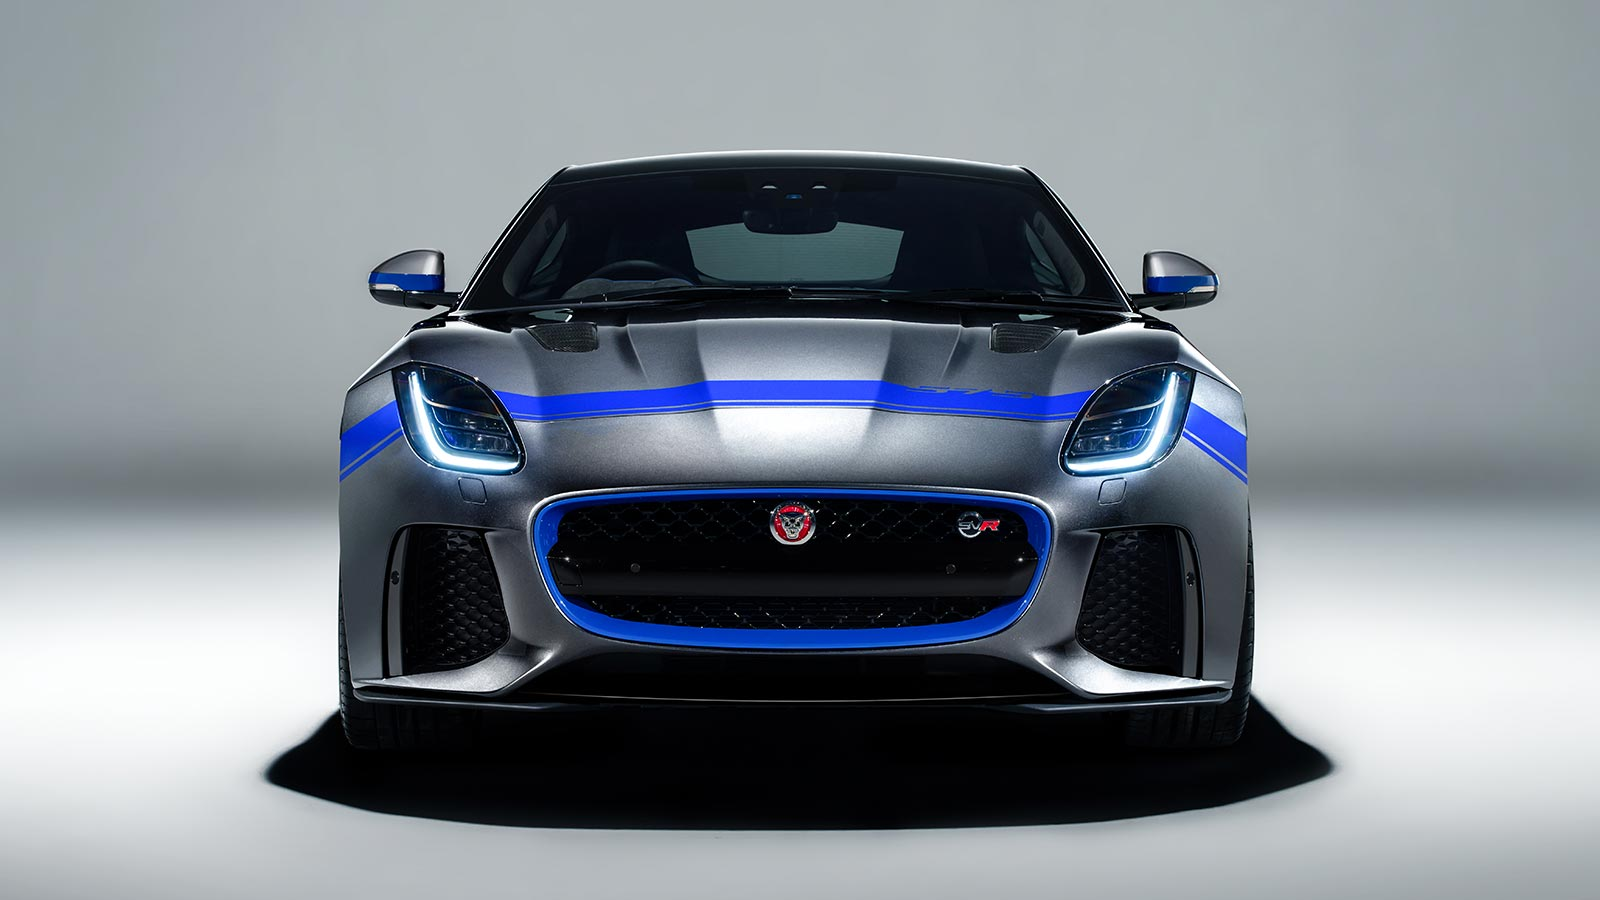 Jaguar F-TYPE Graphic Design